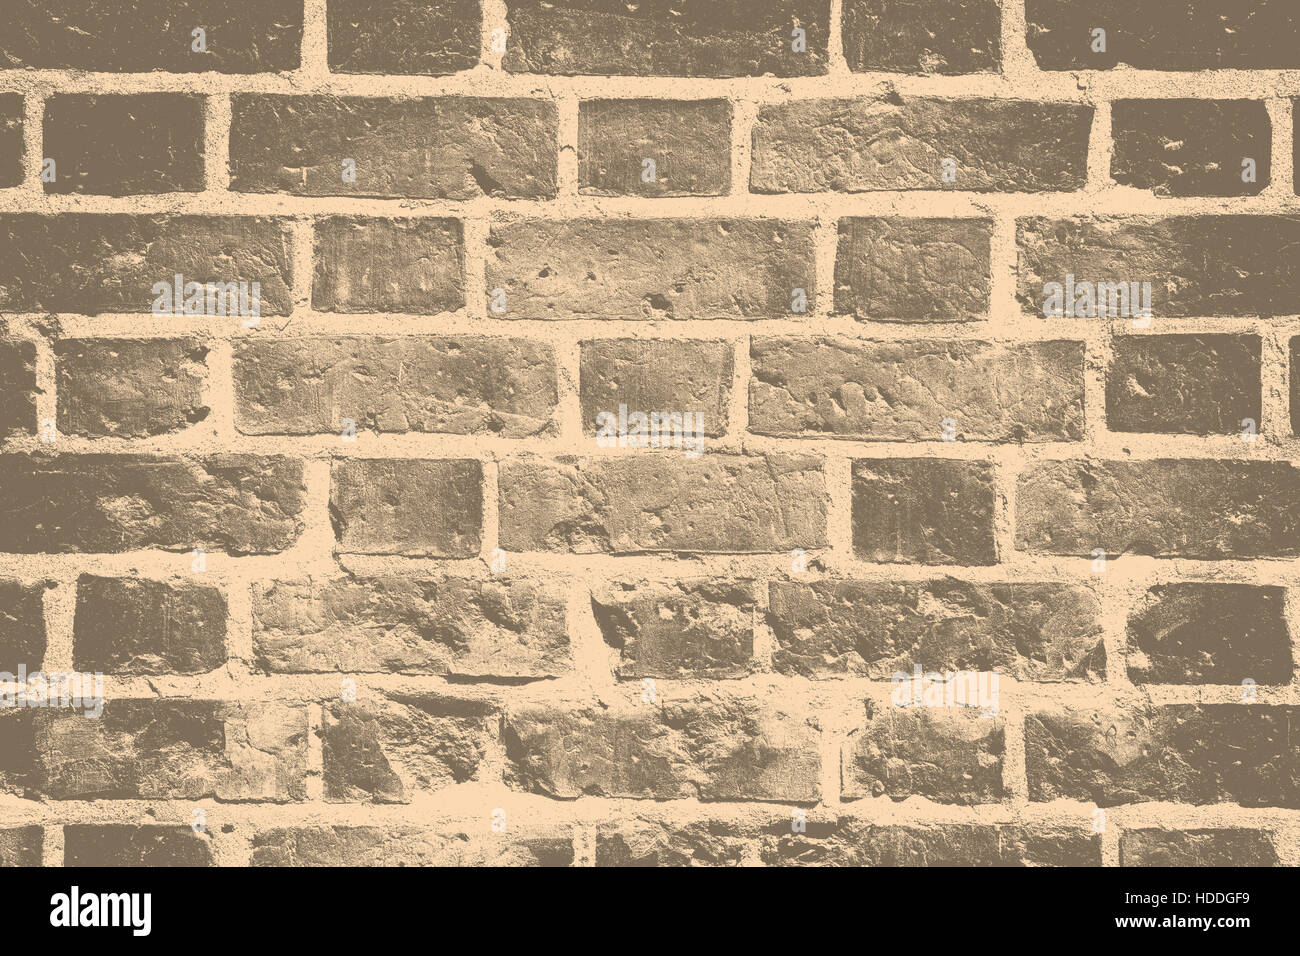 Grunge brick wall  background - layer for photo editor. - Stock Image